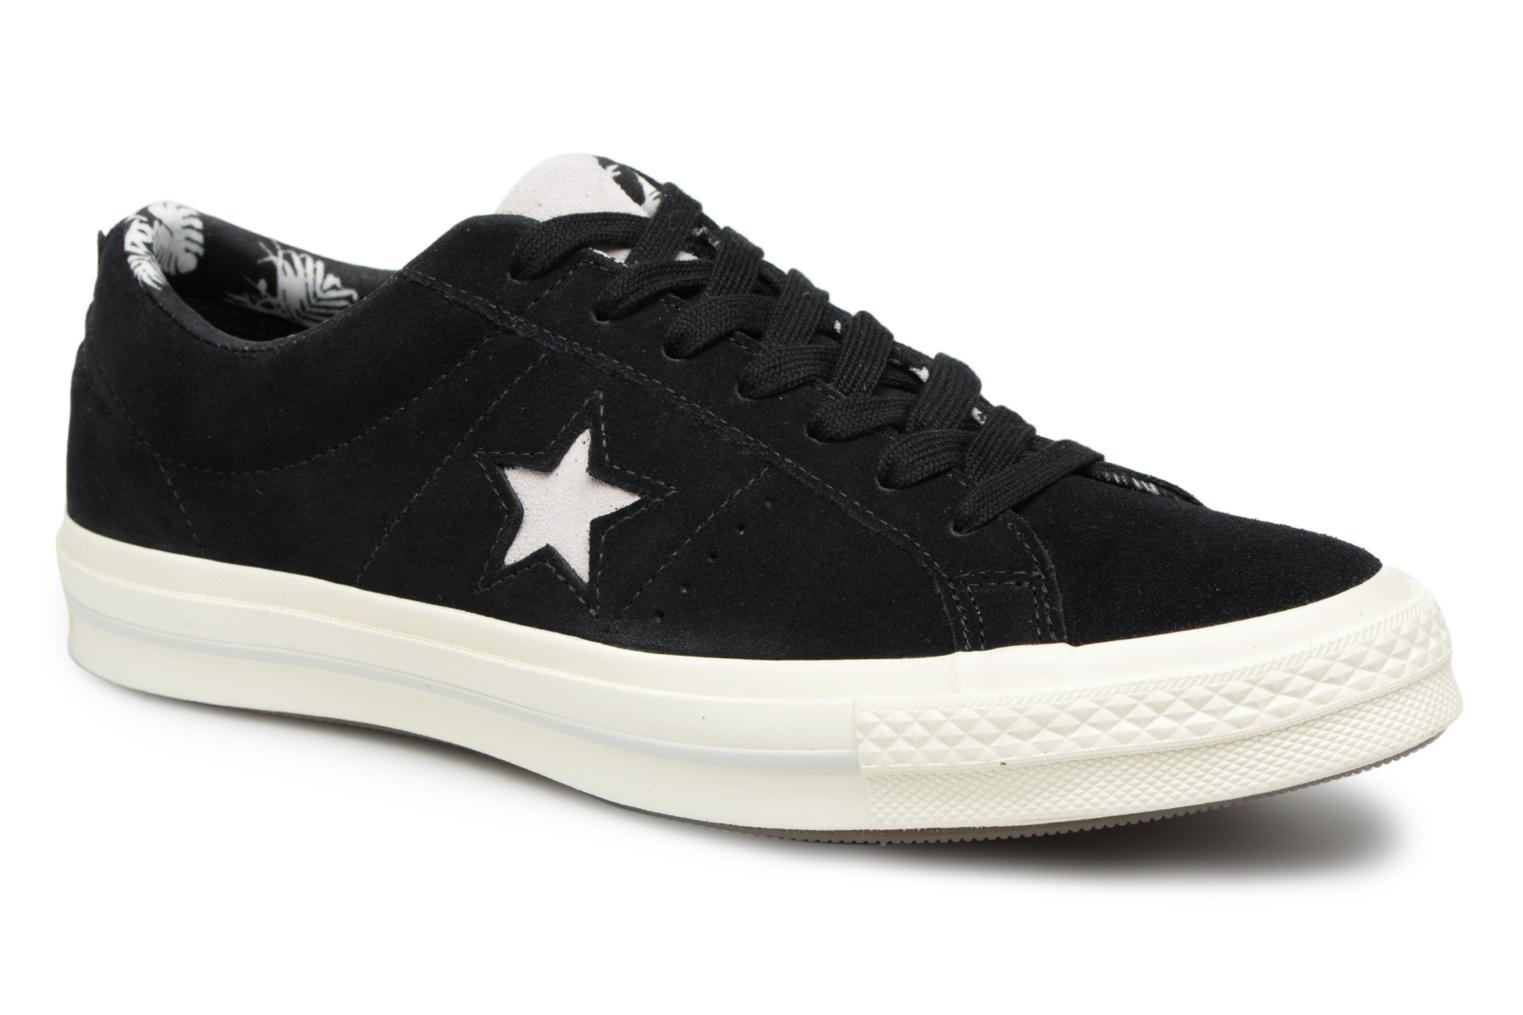 a54219b69 ... norway trainers converse one star tropical feet ox black detailed view  pair view 0a13a efdd5